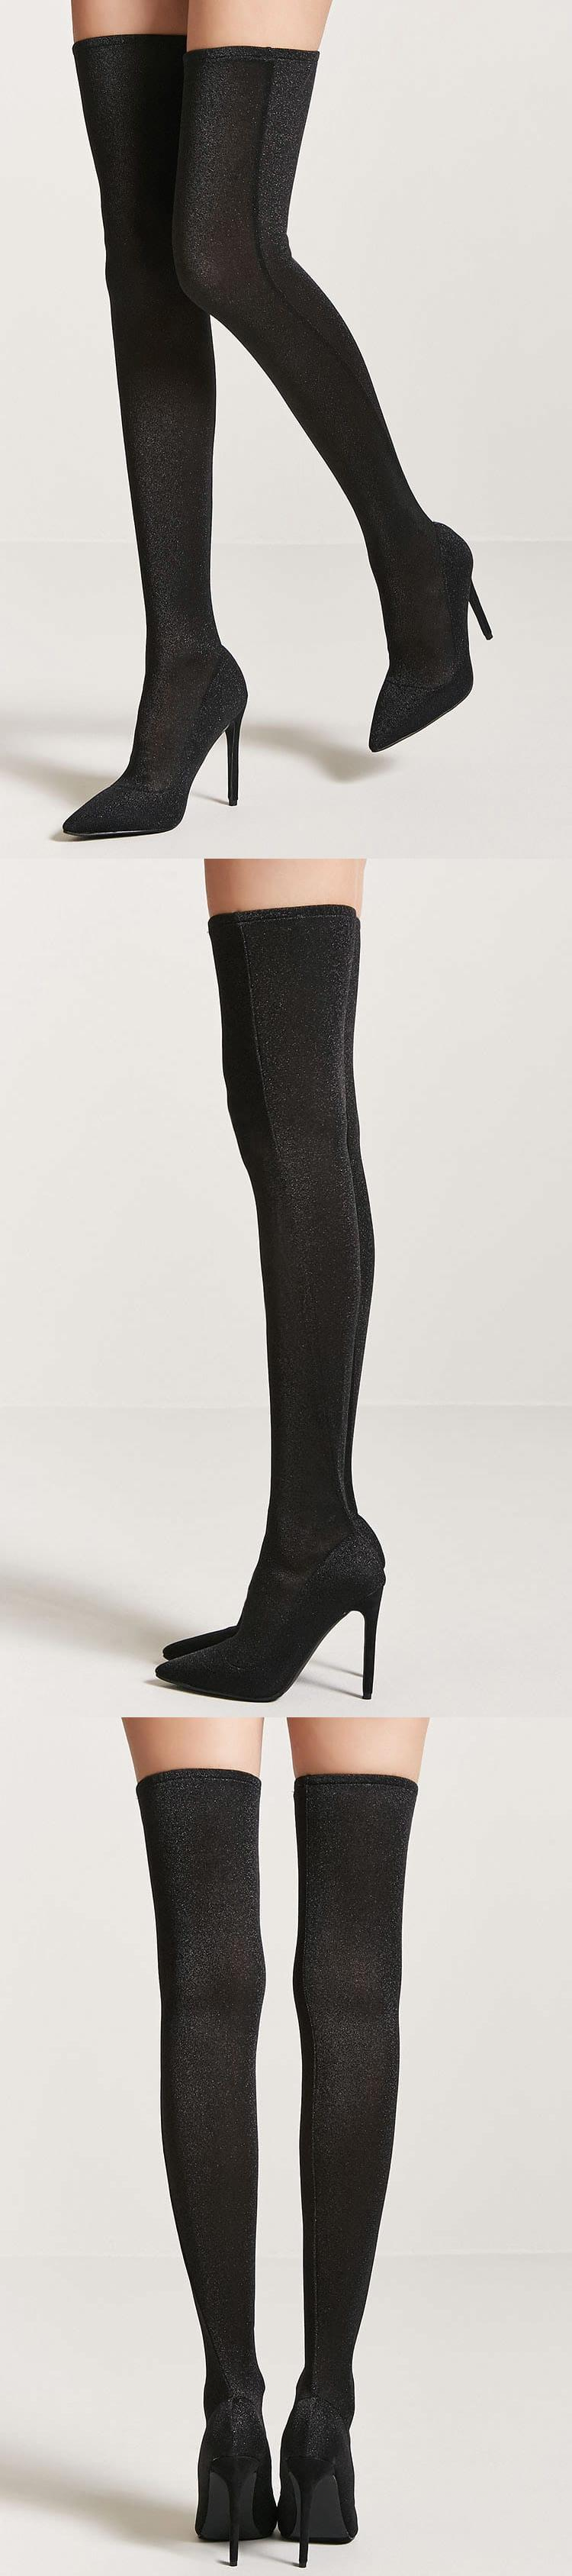 095f7e6c582 Metallic Knit Over-the-Knee Sock Boots    39.90 USD    Forever 21 ...